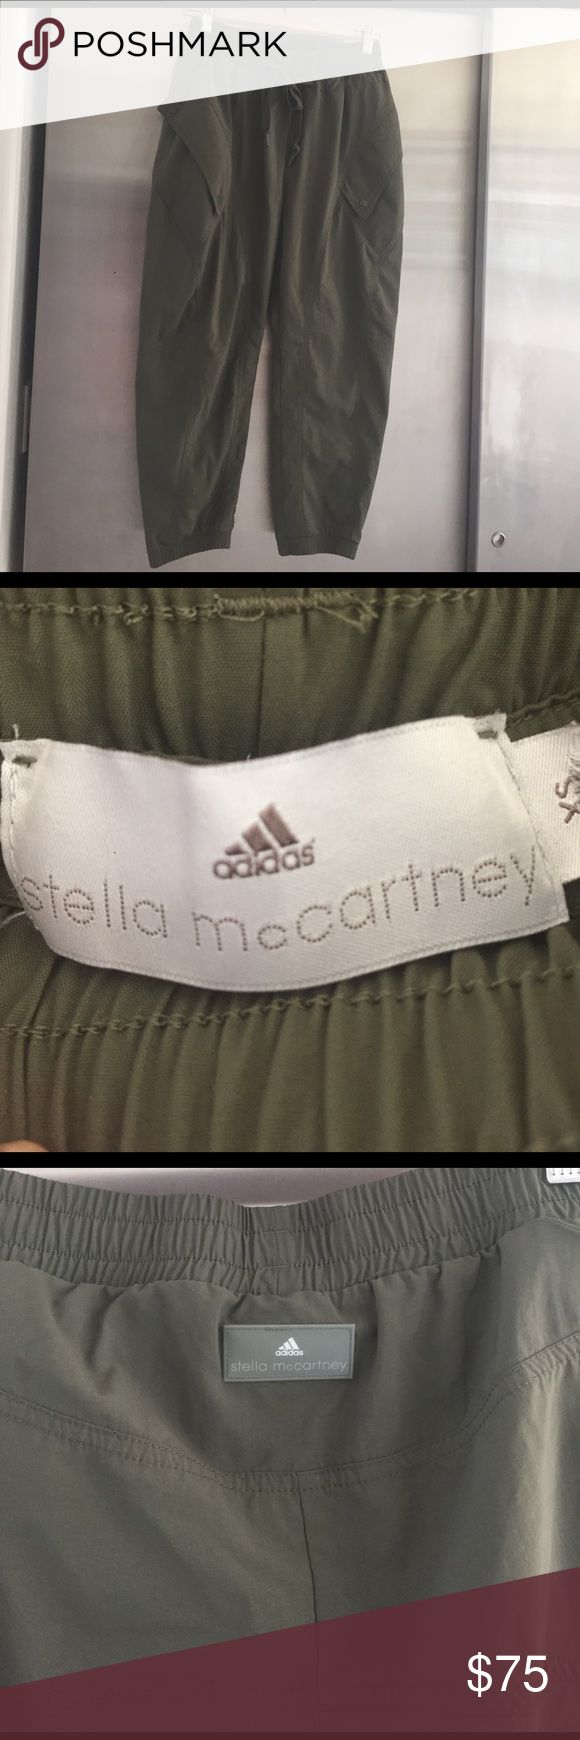 Adidas-Stella McCartney balloon pant! Army green, techno fabric, après workout pant. Worn once. Funky! Adidas by Stella McCartney Pants Track Pants & Joggers